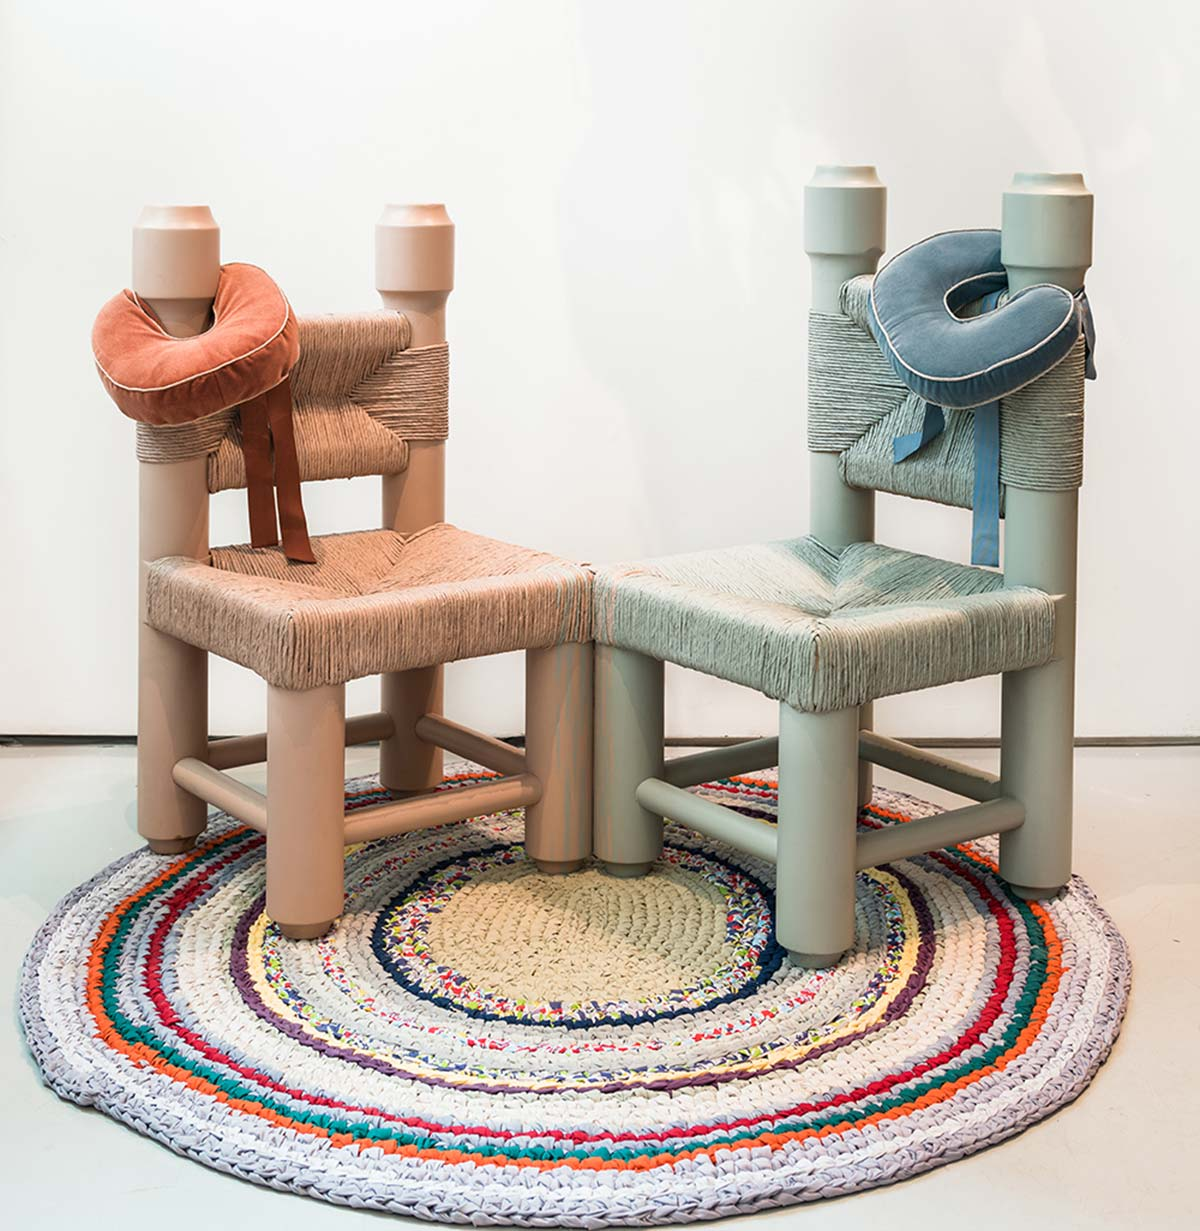 "Bunny Rogers. ""Chairs (after Brigid Mason),"" 2014. Rush-seated interwoven wood chairs."